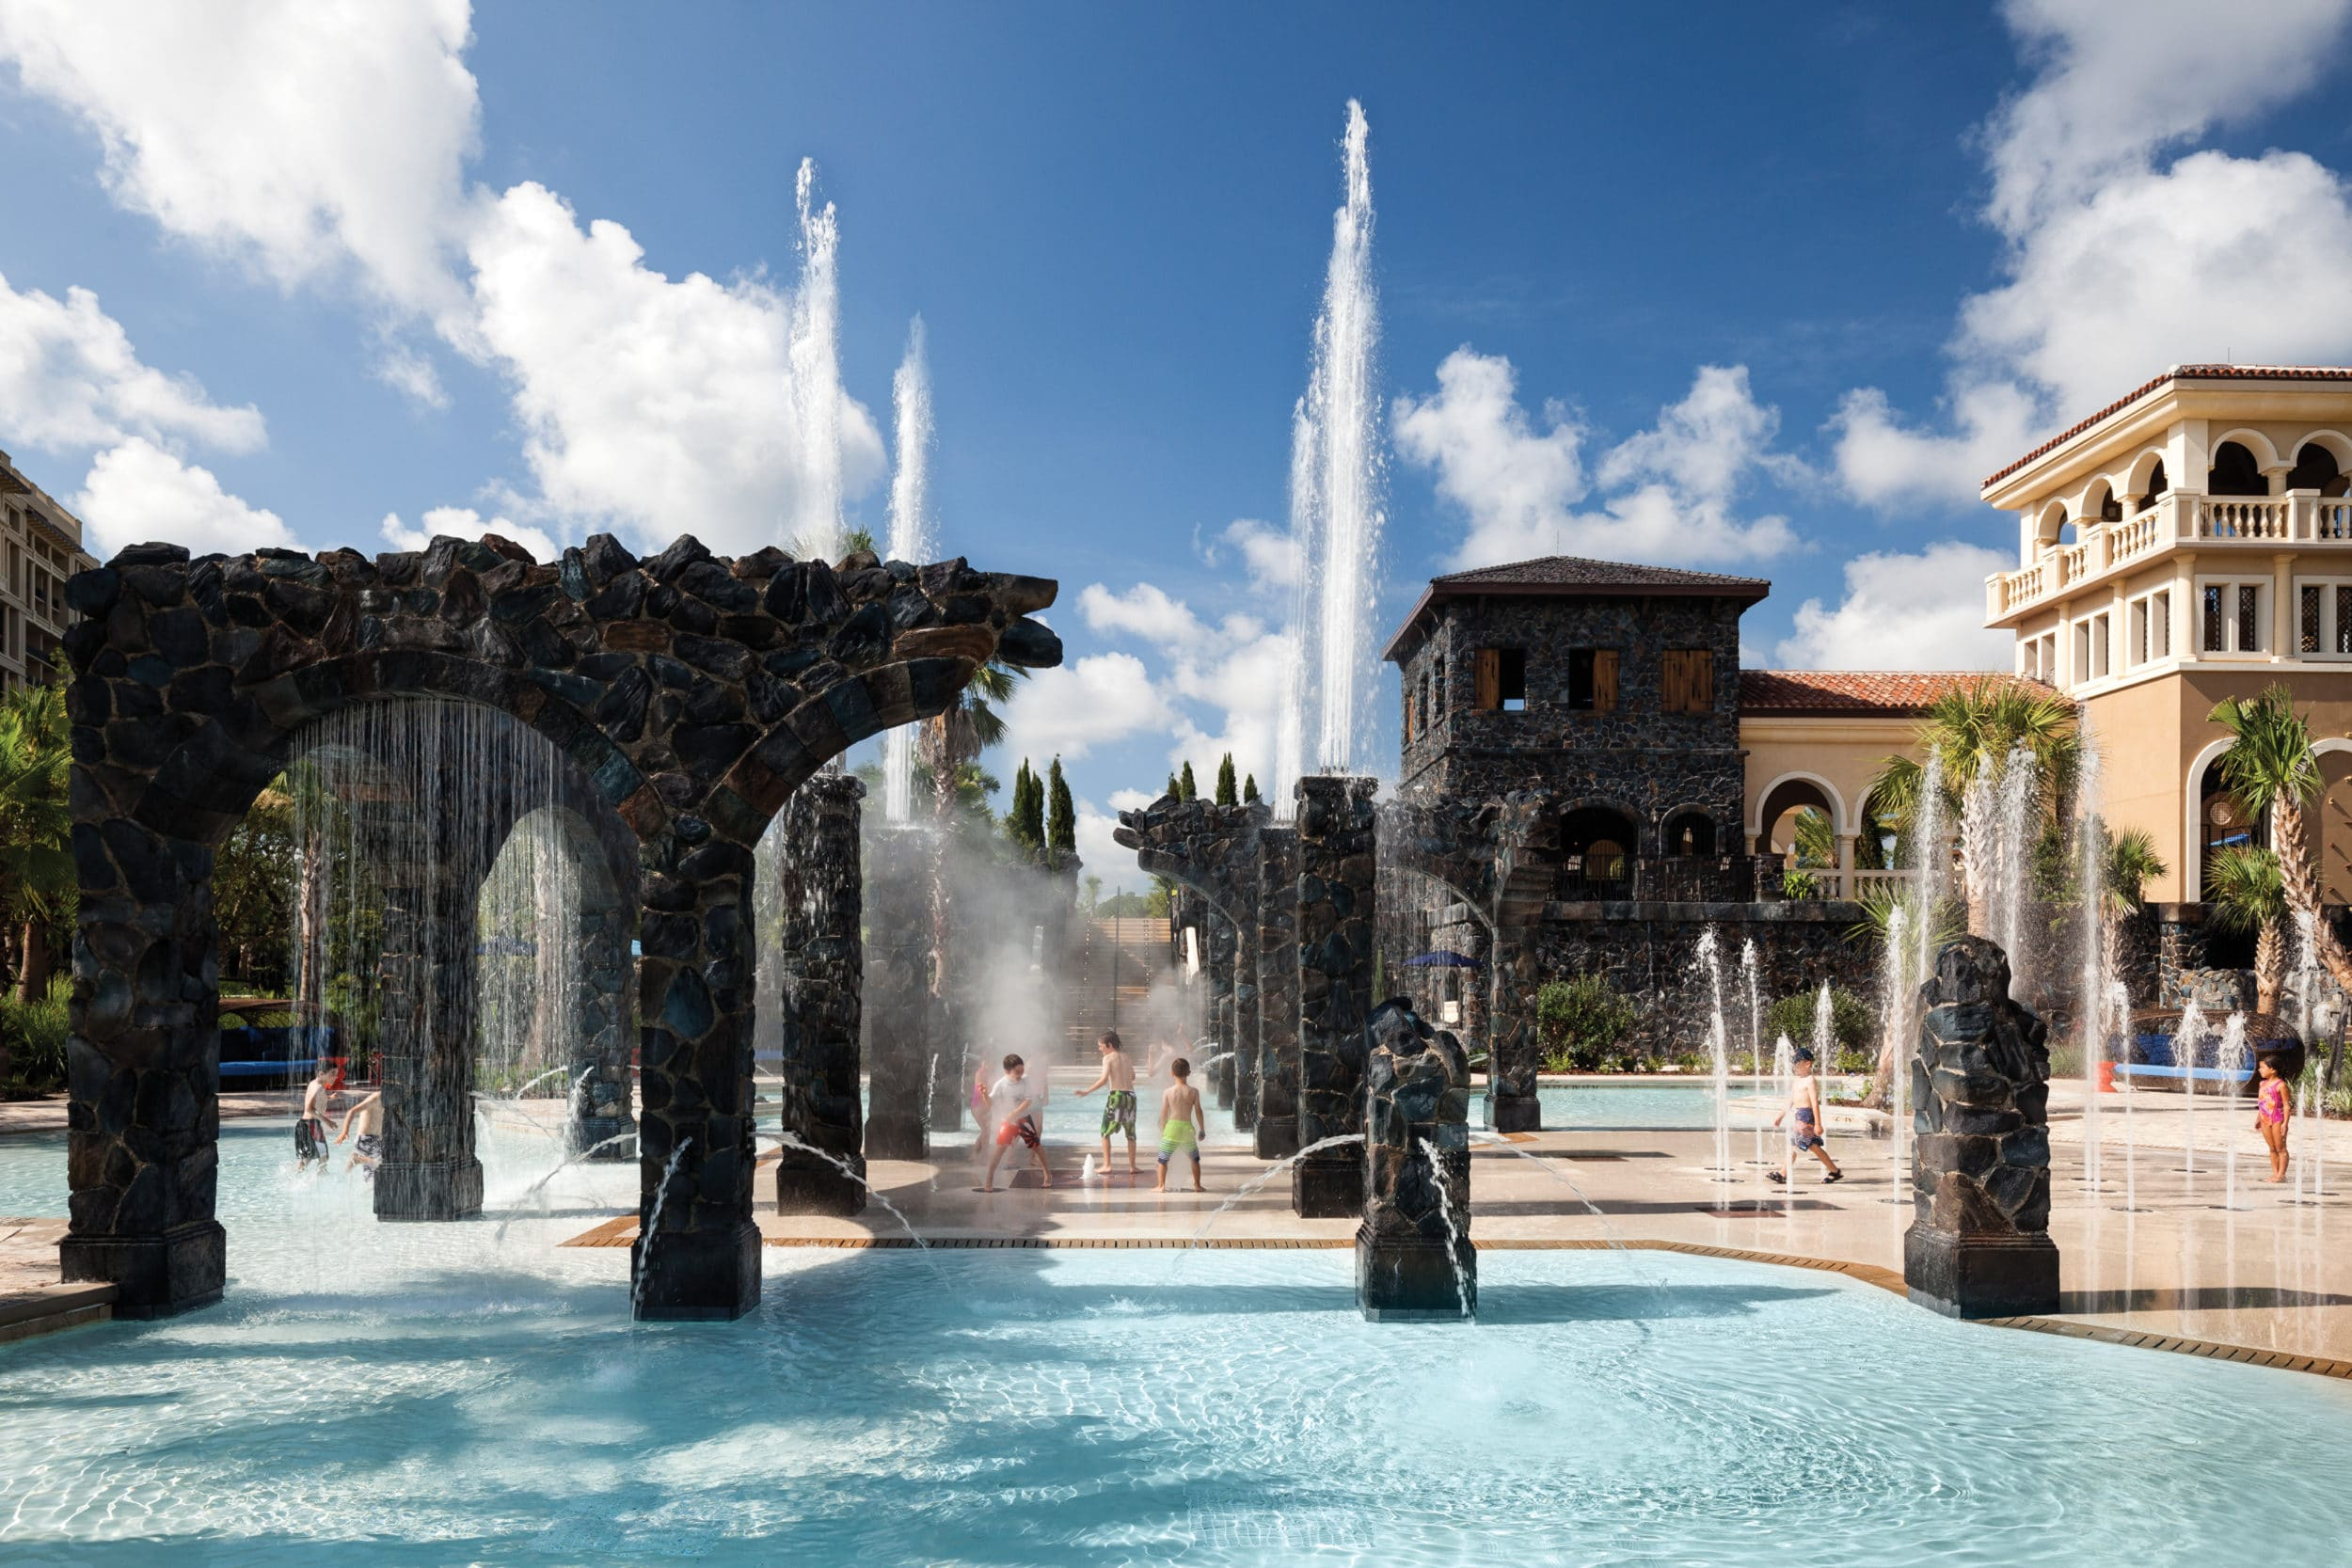 Those looking for luxury on Walt Disney World vacations should choose Four Seasons Orlando